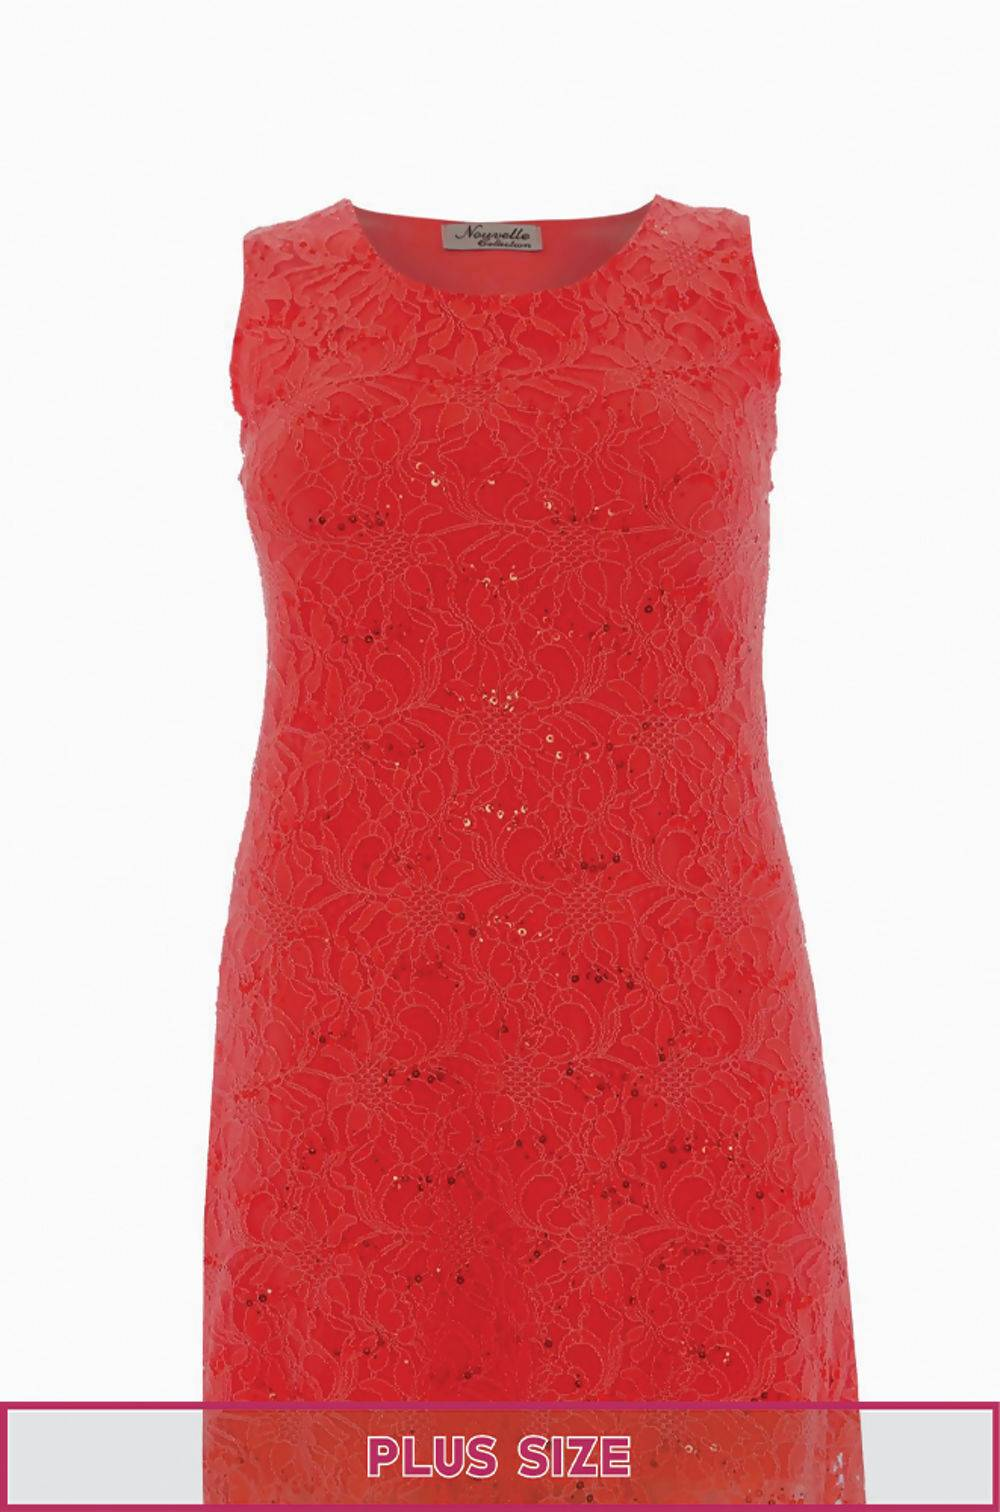 Plus Size Red Sleeveless Lace Sequin Evening Swing Dress J5 Fashion